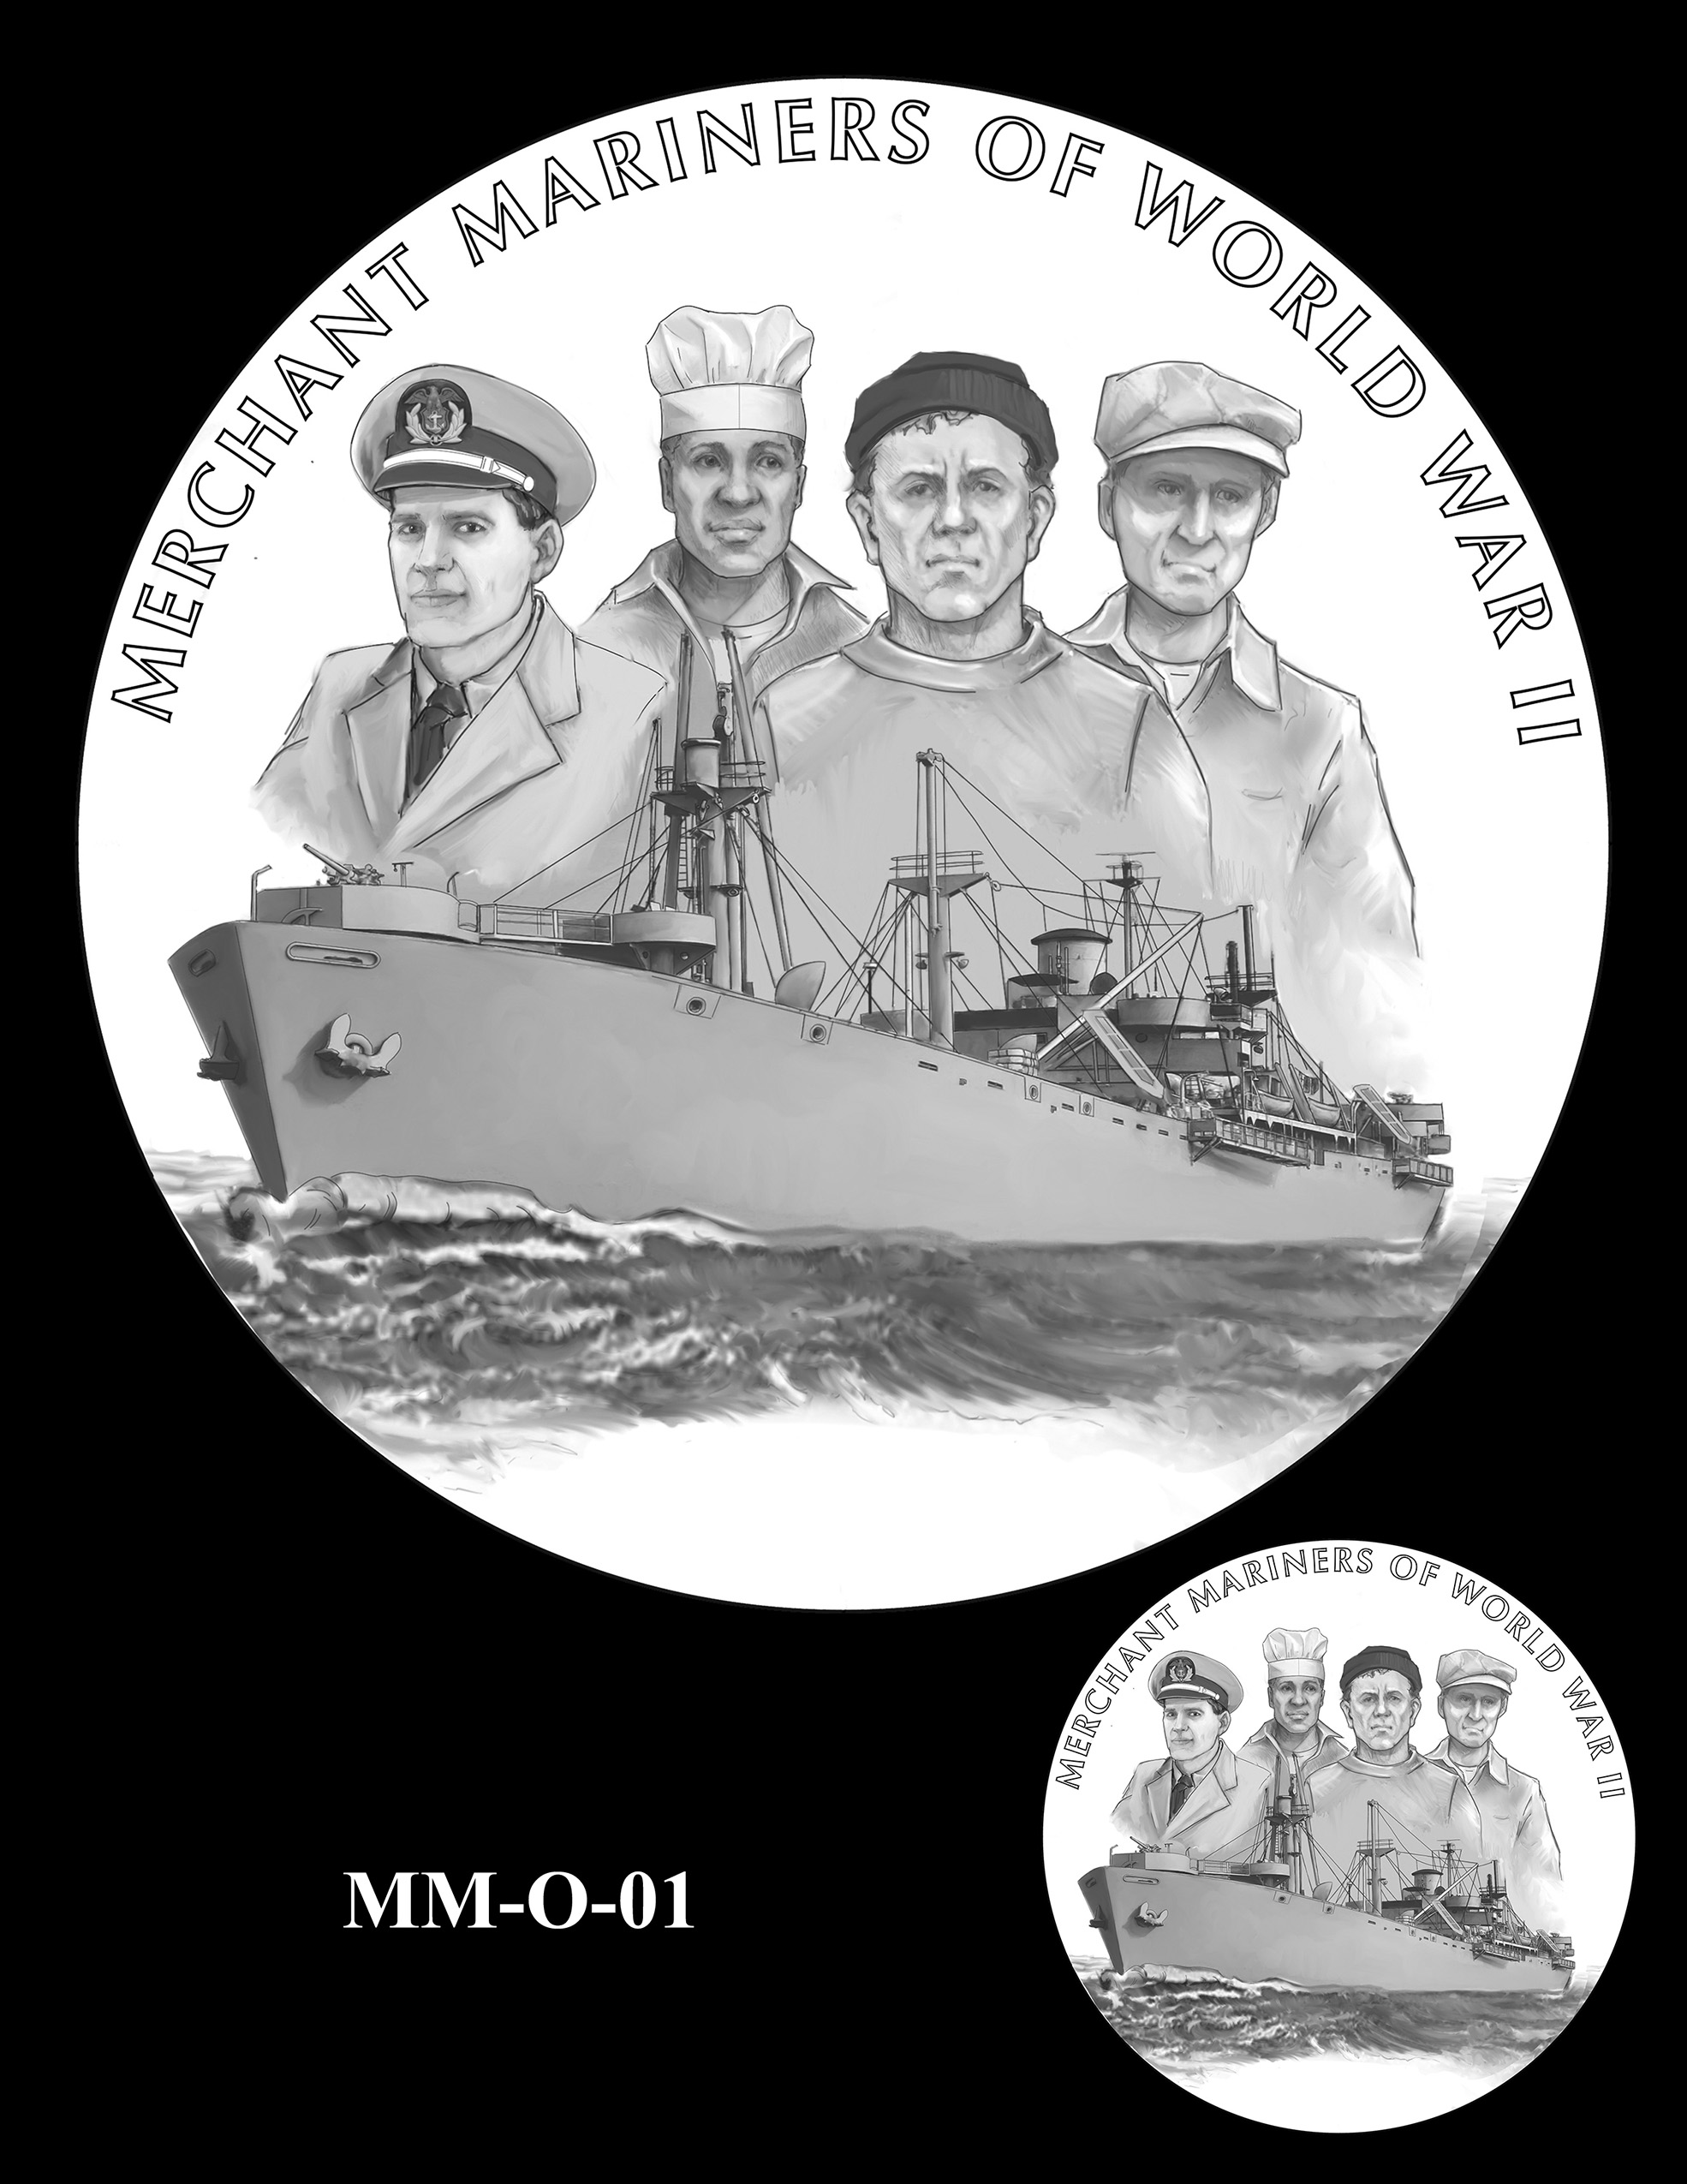 MM-O-01 -- Merchant Mariners of World War II Congressional Gold Medal